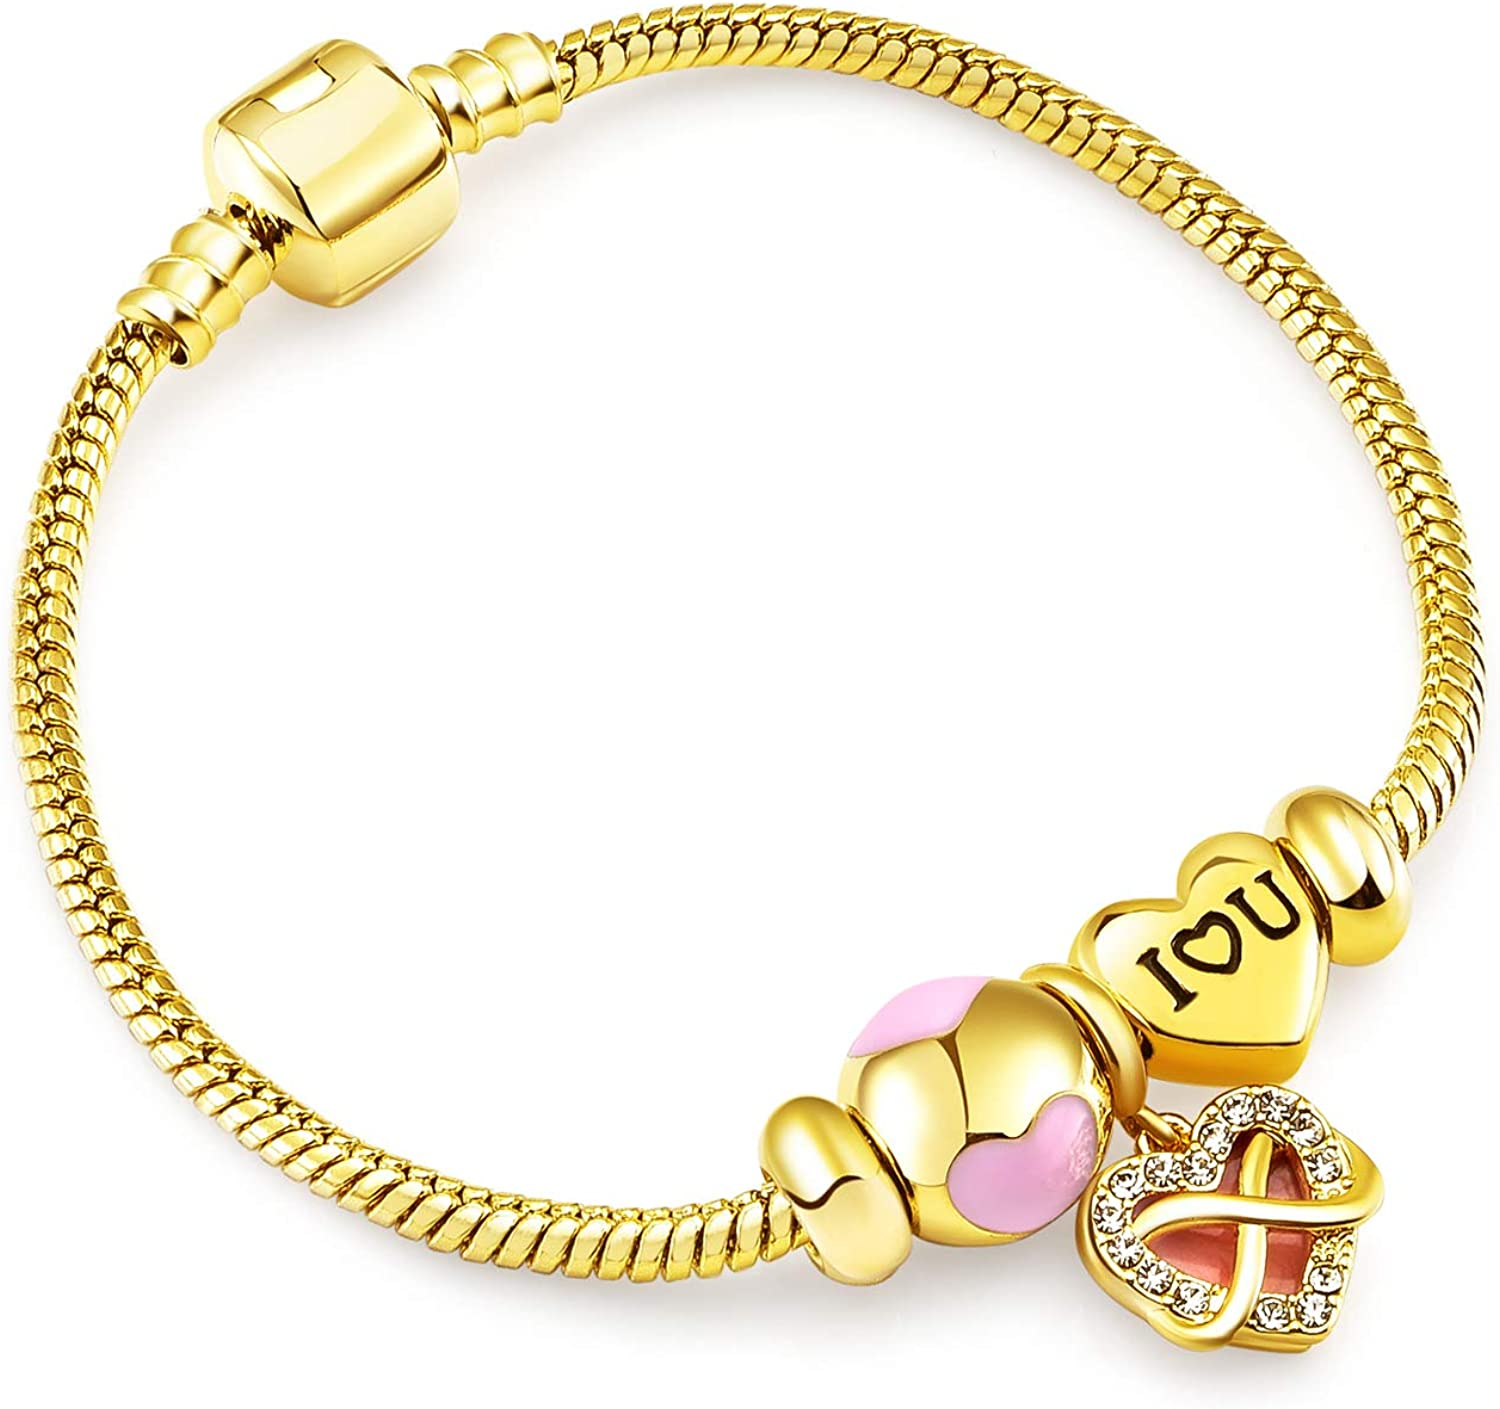 RIMAYZI 14K Gold Plated Cash special price Charm Women's Bracelet for Women Cheap mail order sales